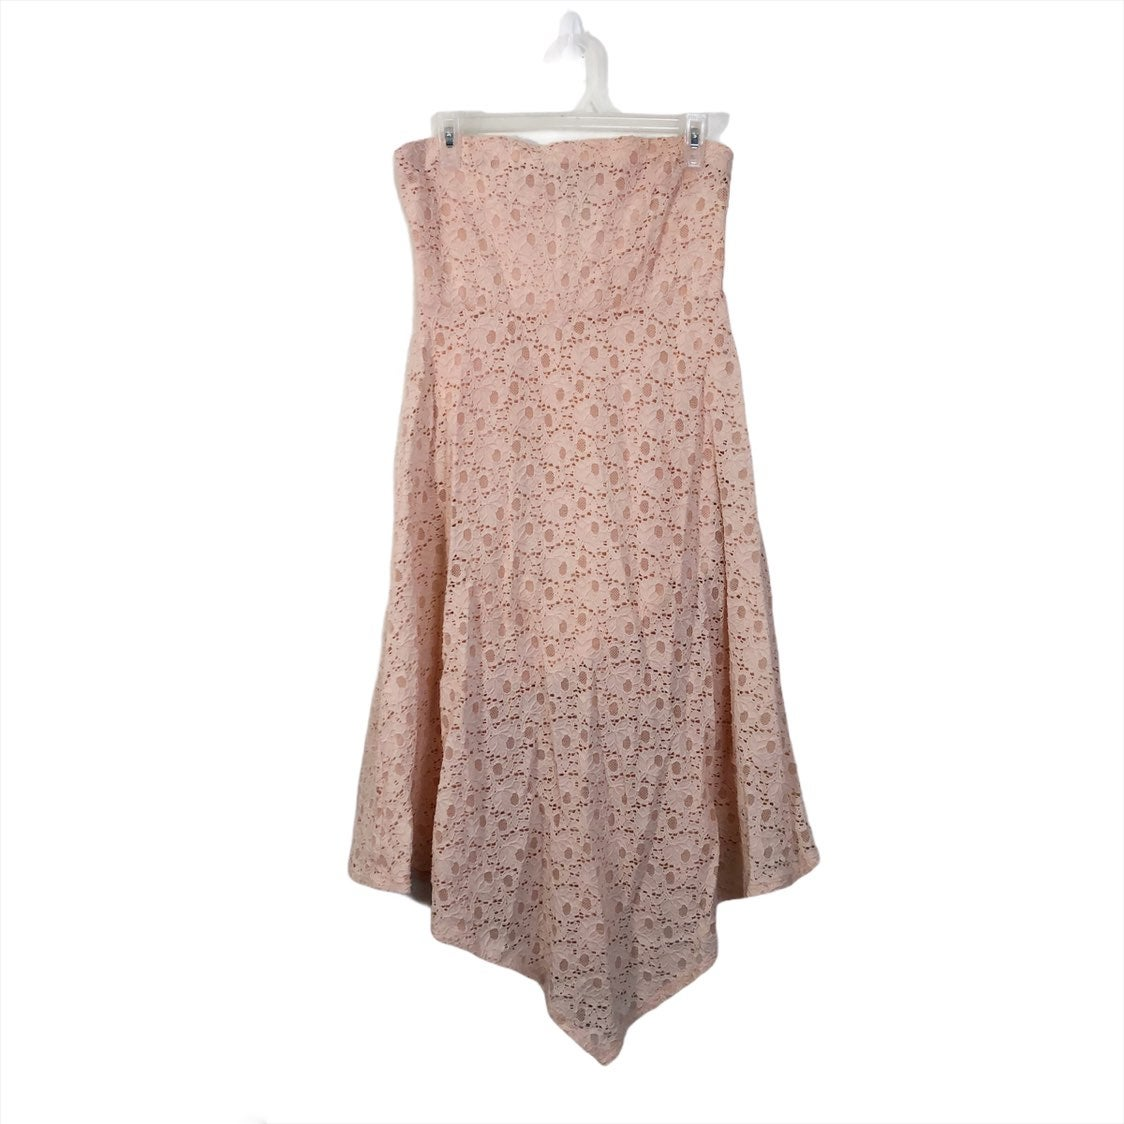 Moda International Strapless Lace Dress